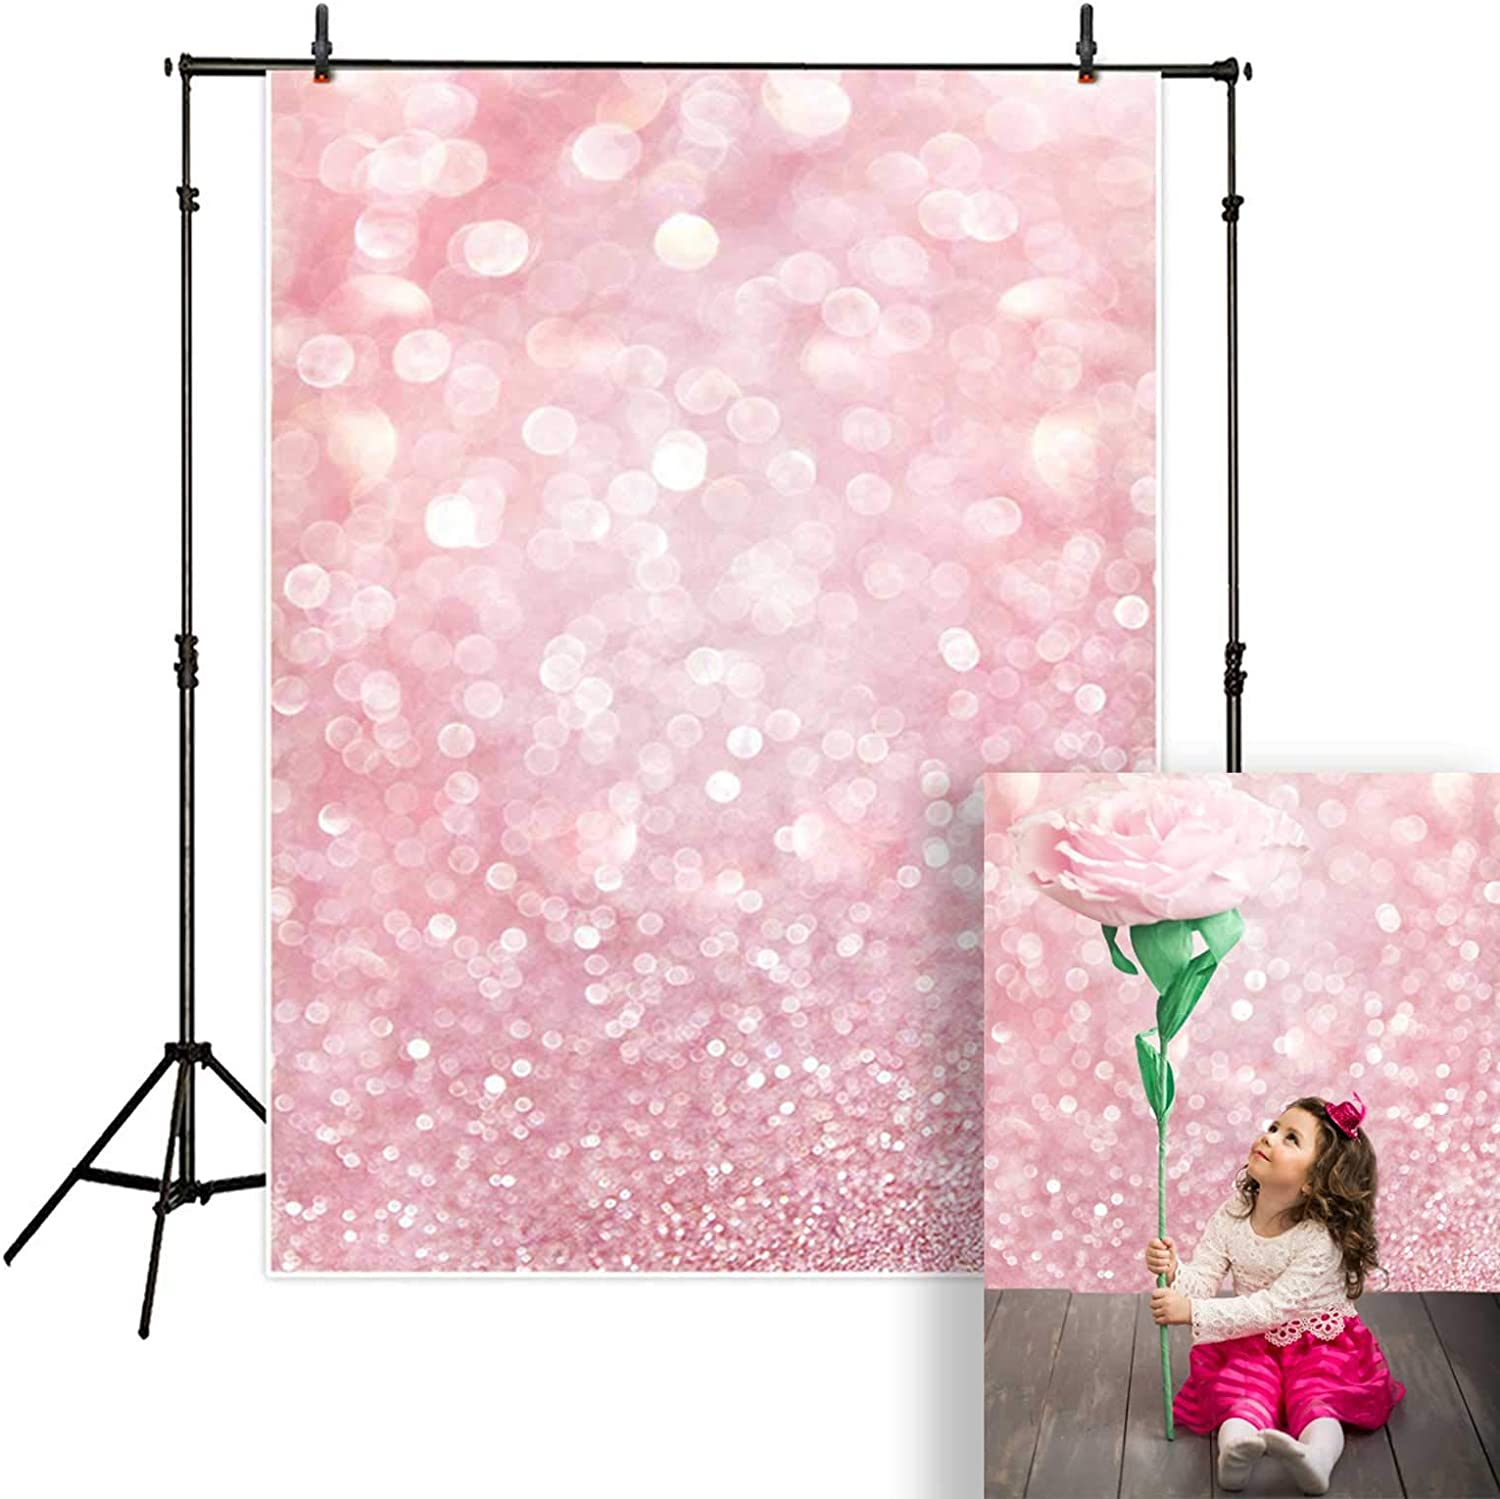 Funnytree 10x8FT Red Magic Christmas Photography Backdrop Winter Party Decoration Bokeh White Snowflake Background Photo Booth